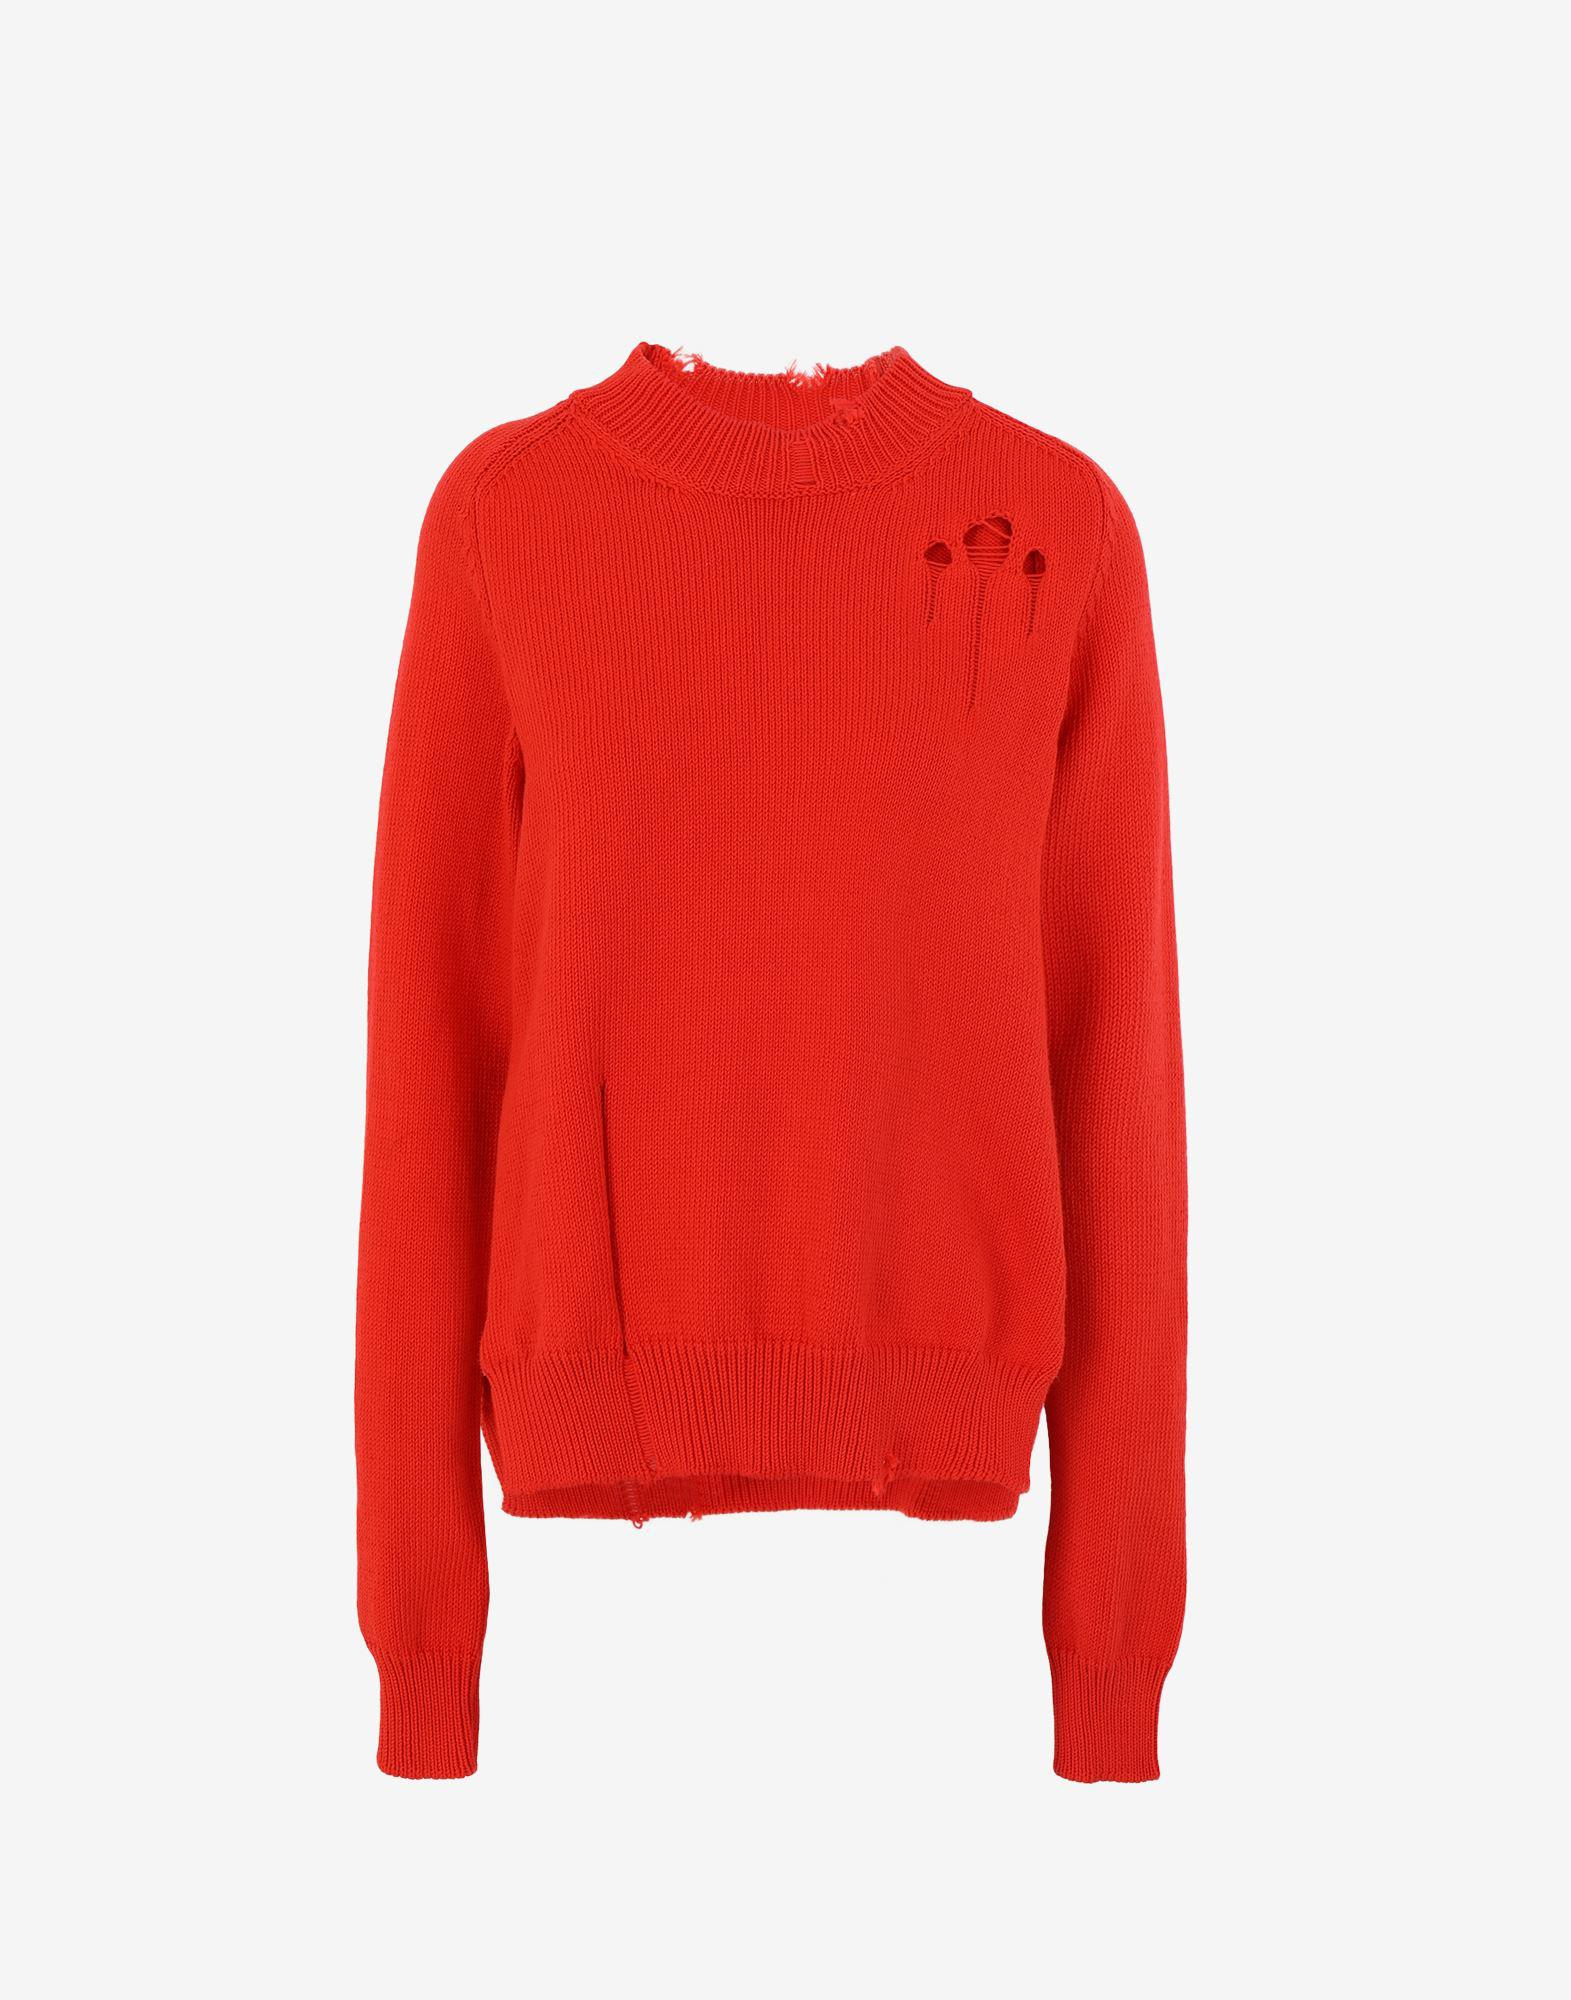 Destroyed sweater 4